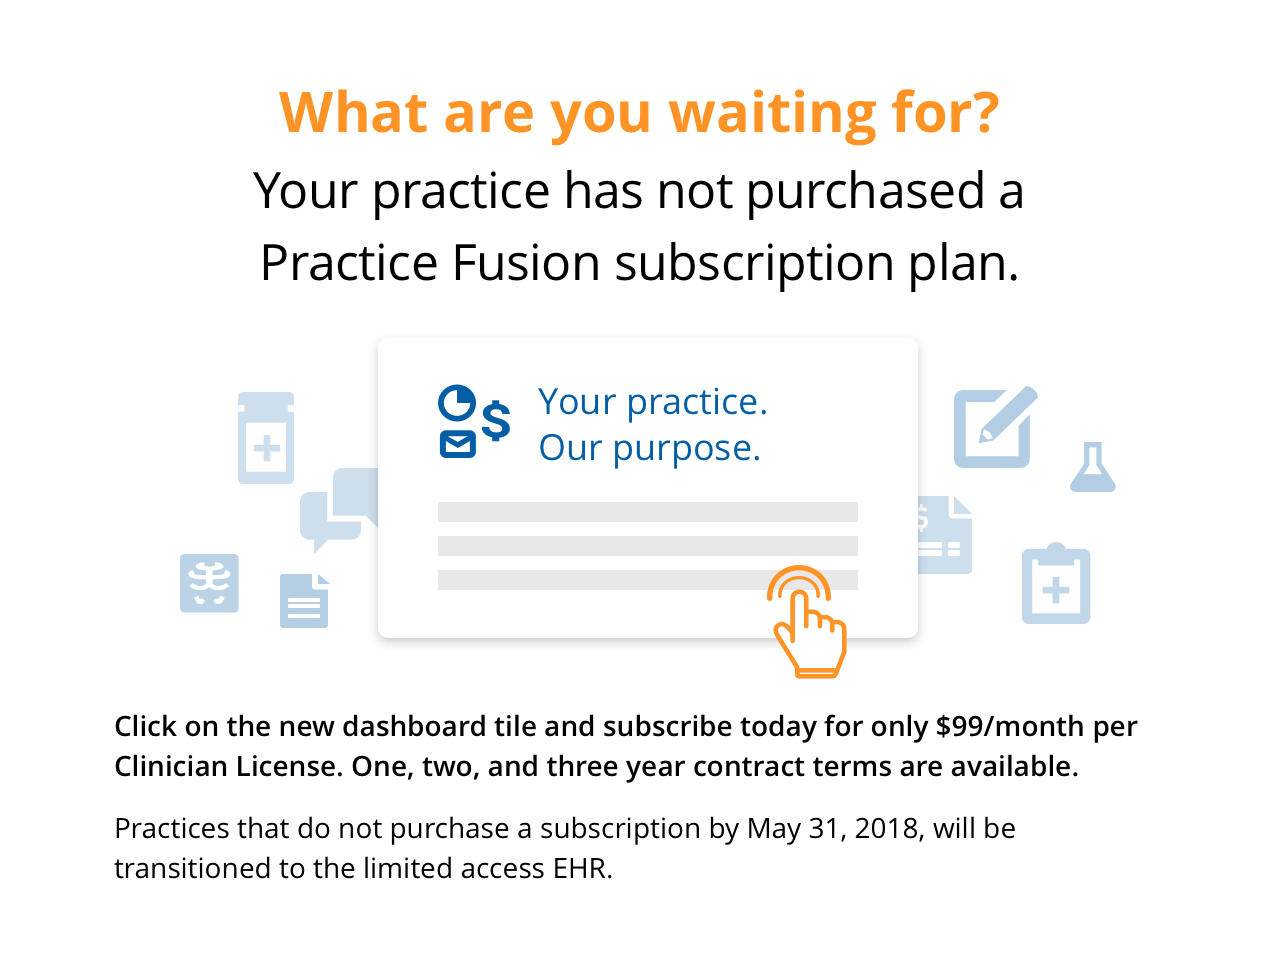 Click on the new dashboard tile and subscribe today for only $99/month per Clinician License. One, two, and three year contract terms are available.